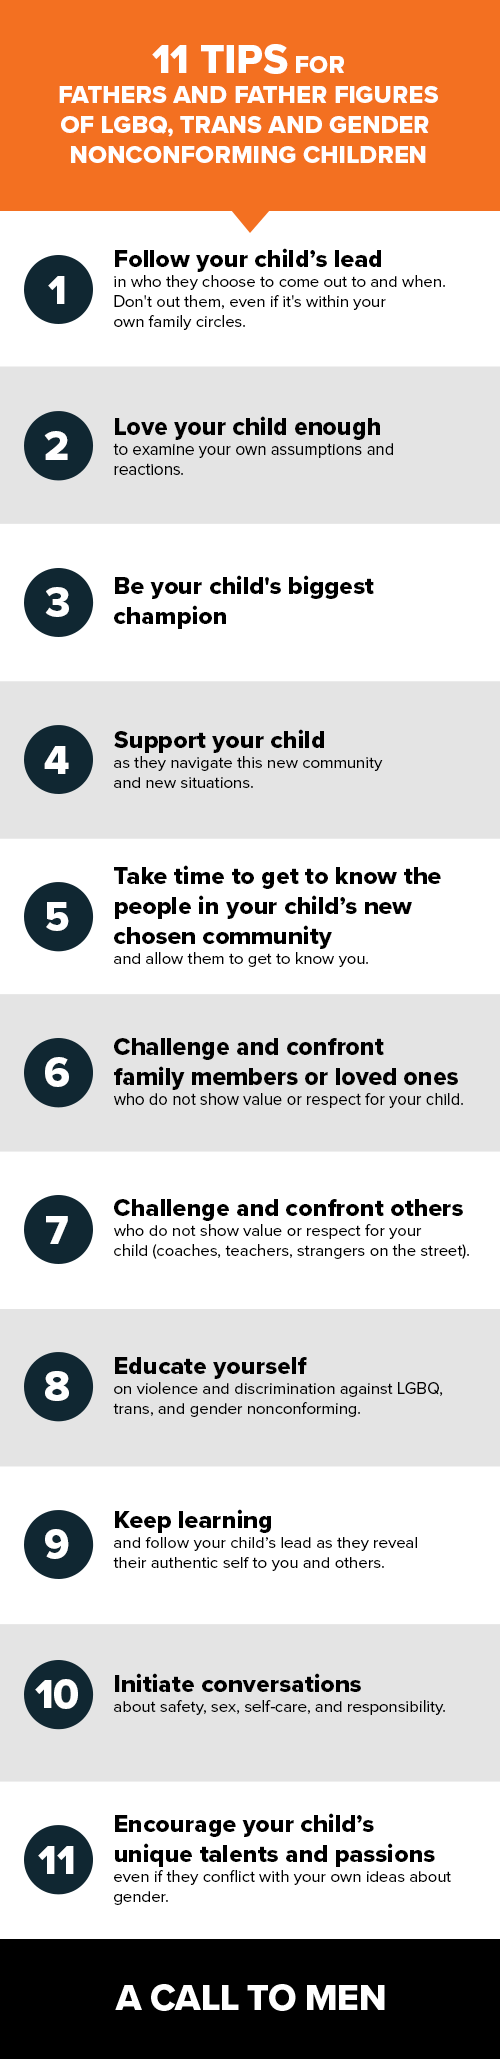 11 tips for fathers and father figures